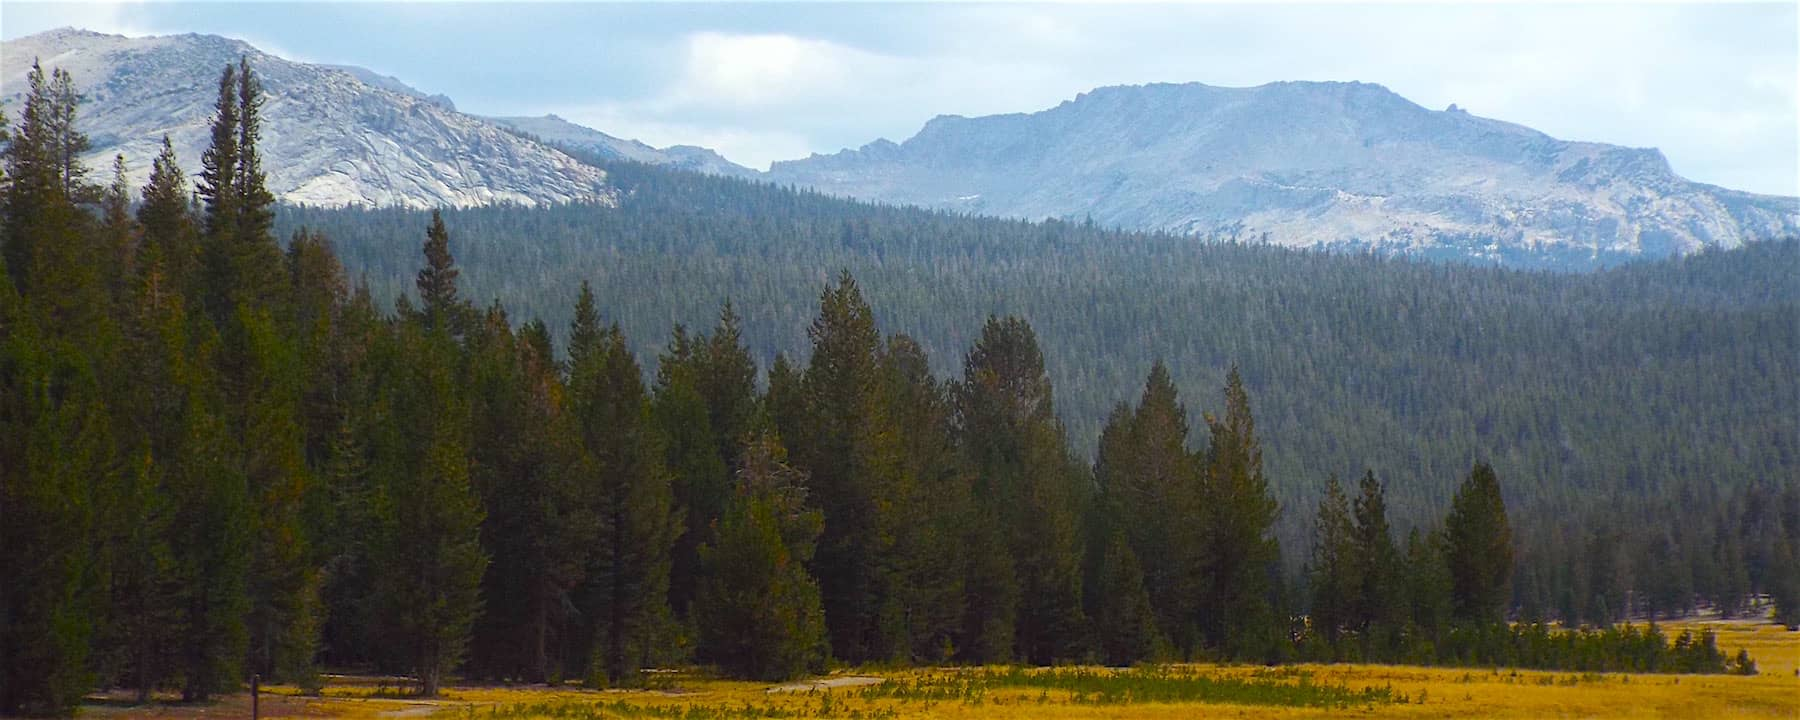 The drive from Yosemite to Mammoth lakes